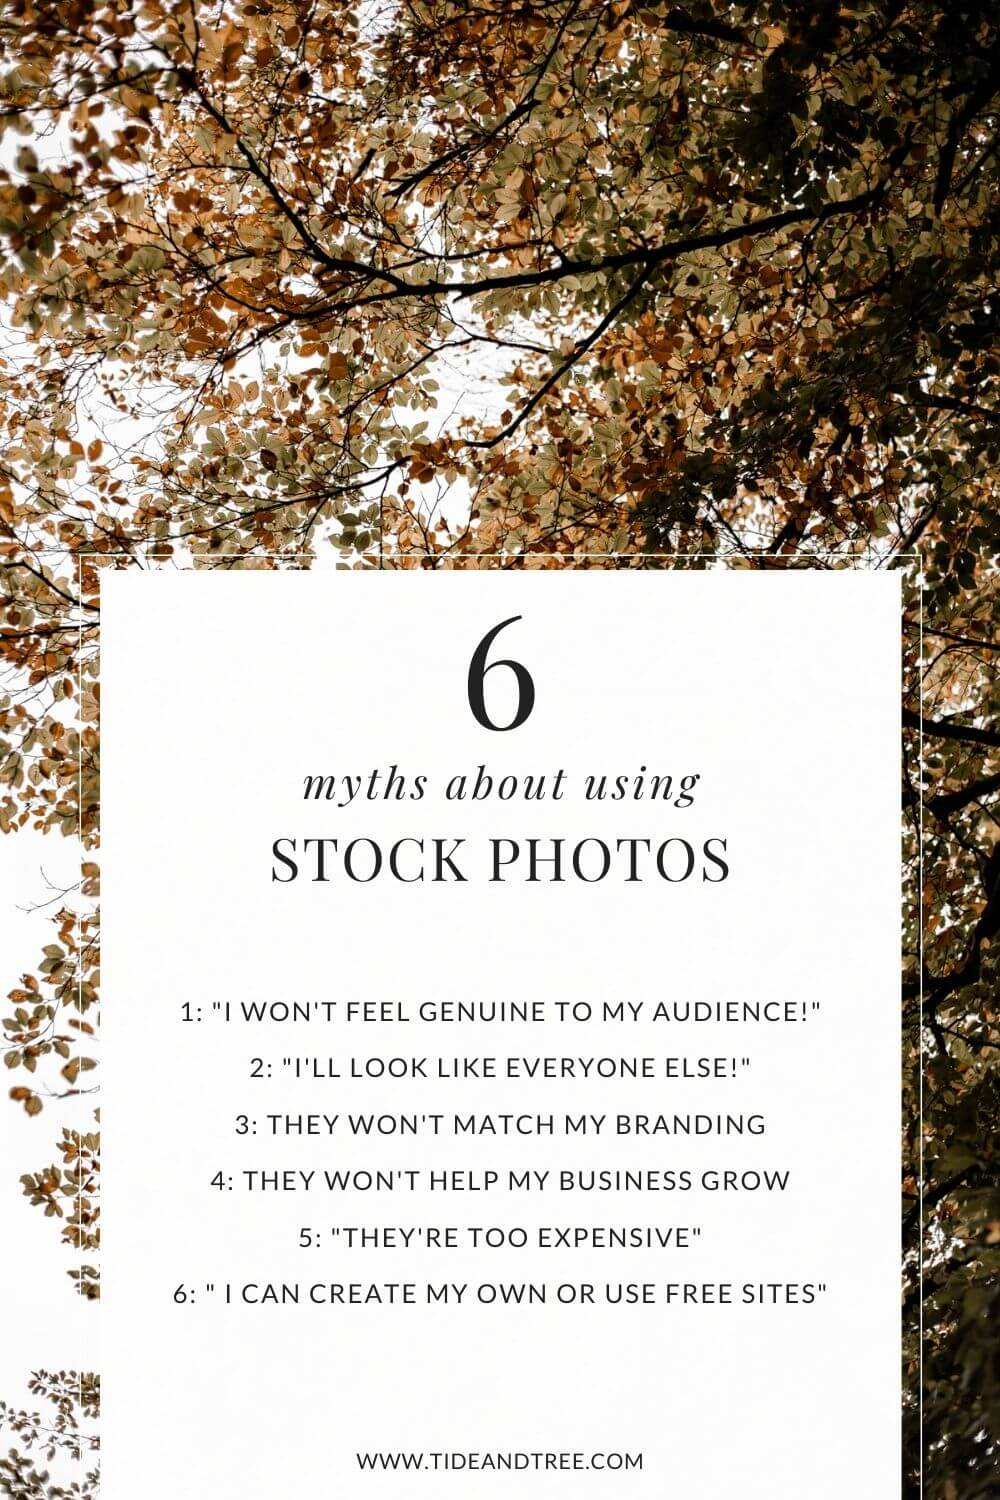 6 Myths about using stock photos